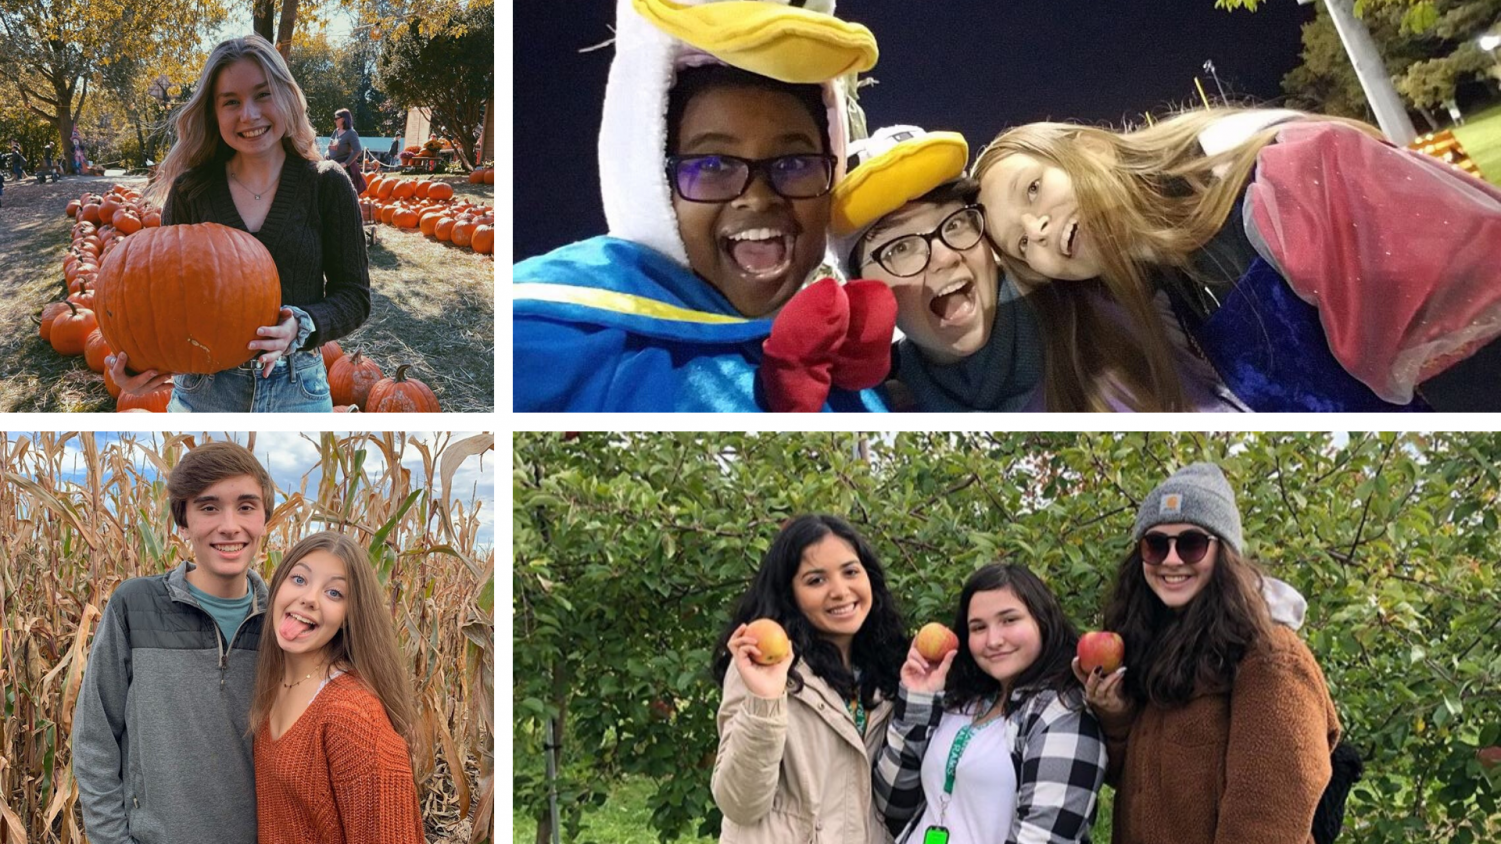 Students pose at events/activities for the fall season